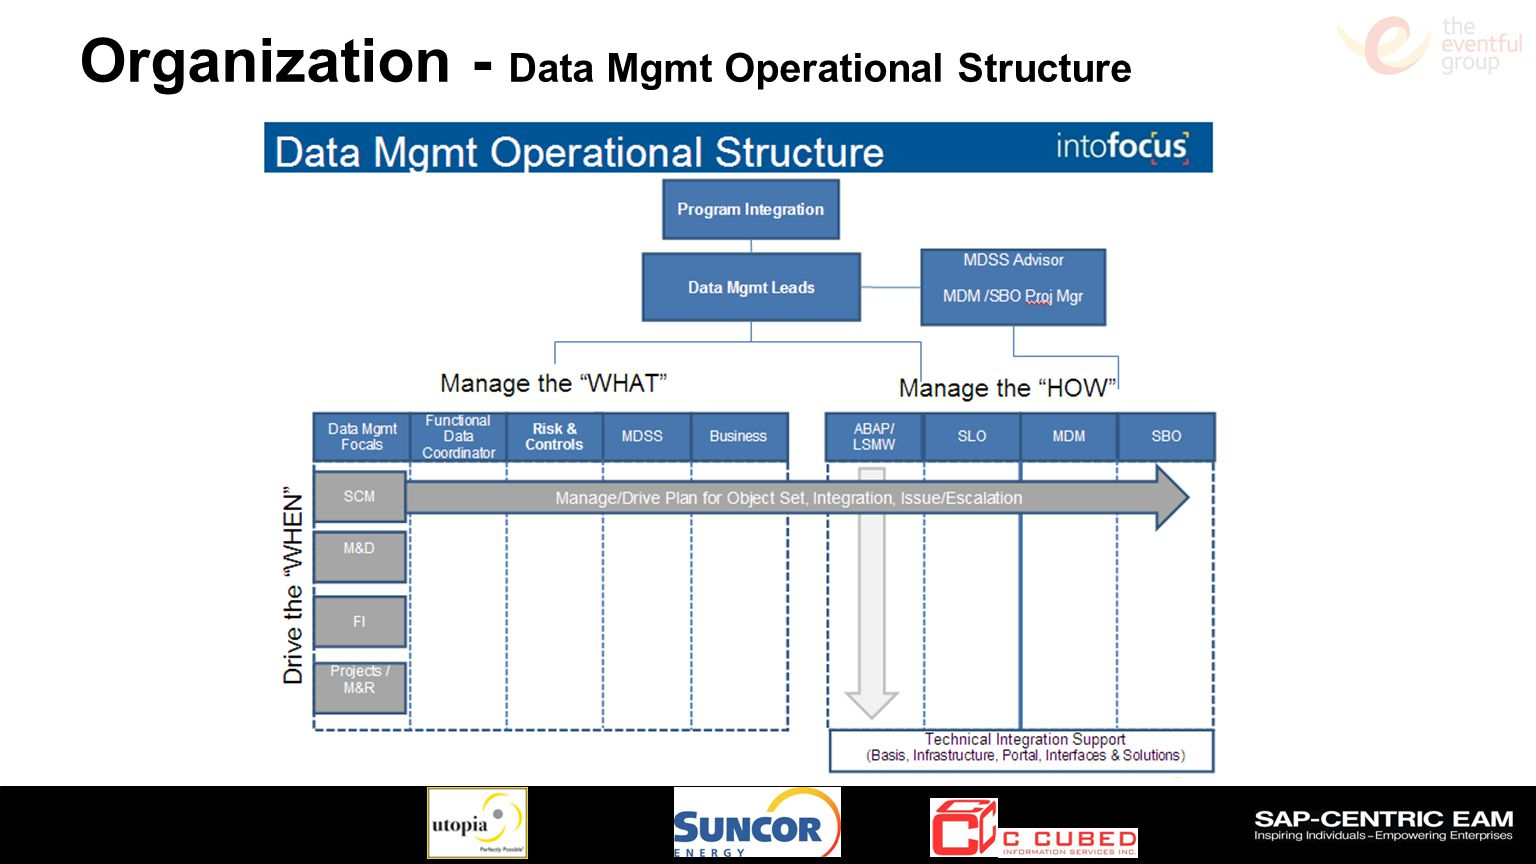 Organization - Data Mgmt Operational Structure